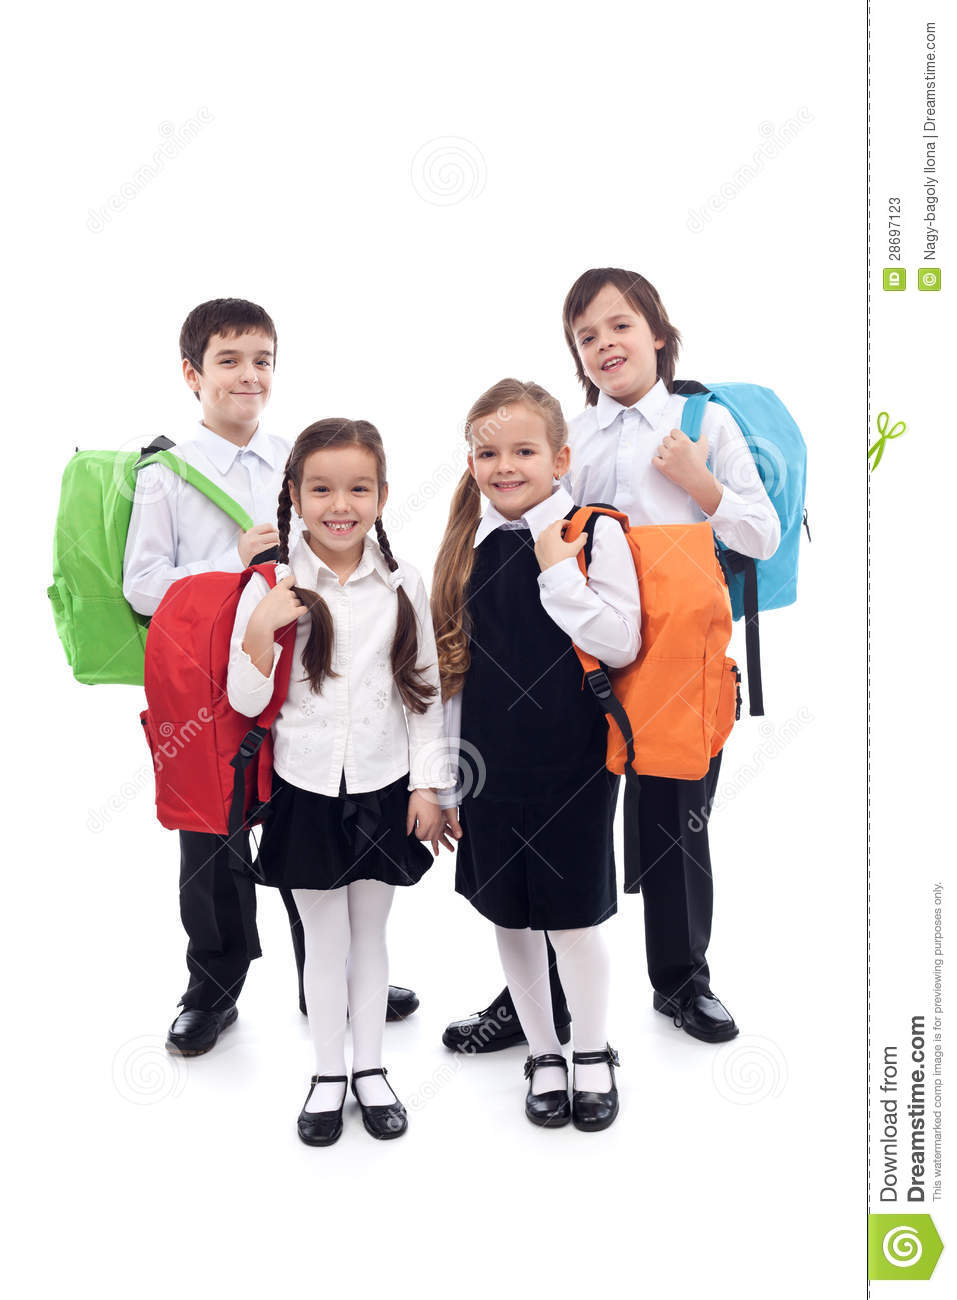 Happy School Kids With Colorful Bags Stock Photos - Image ...